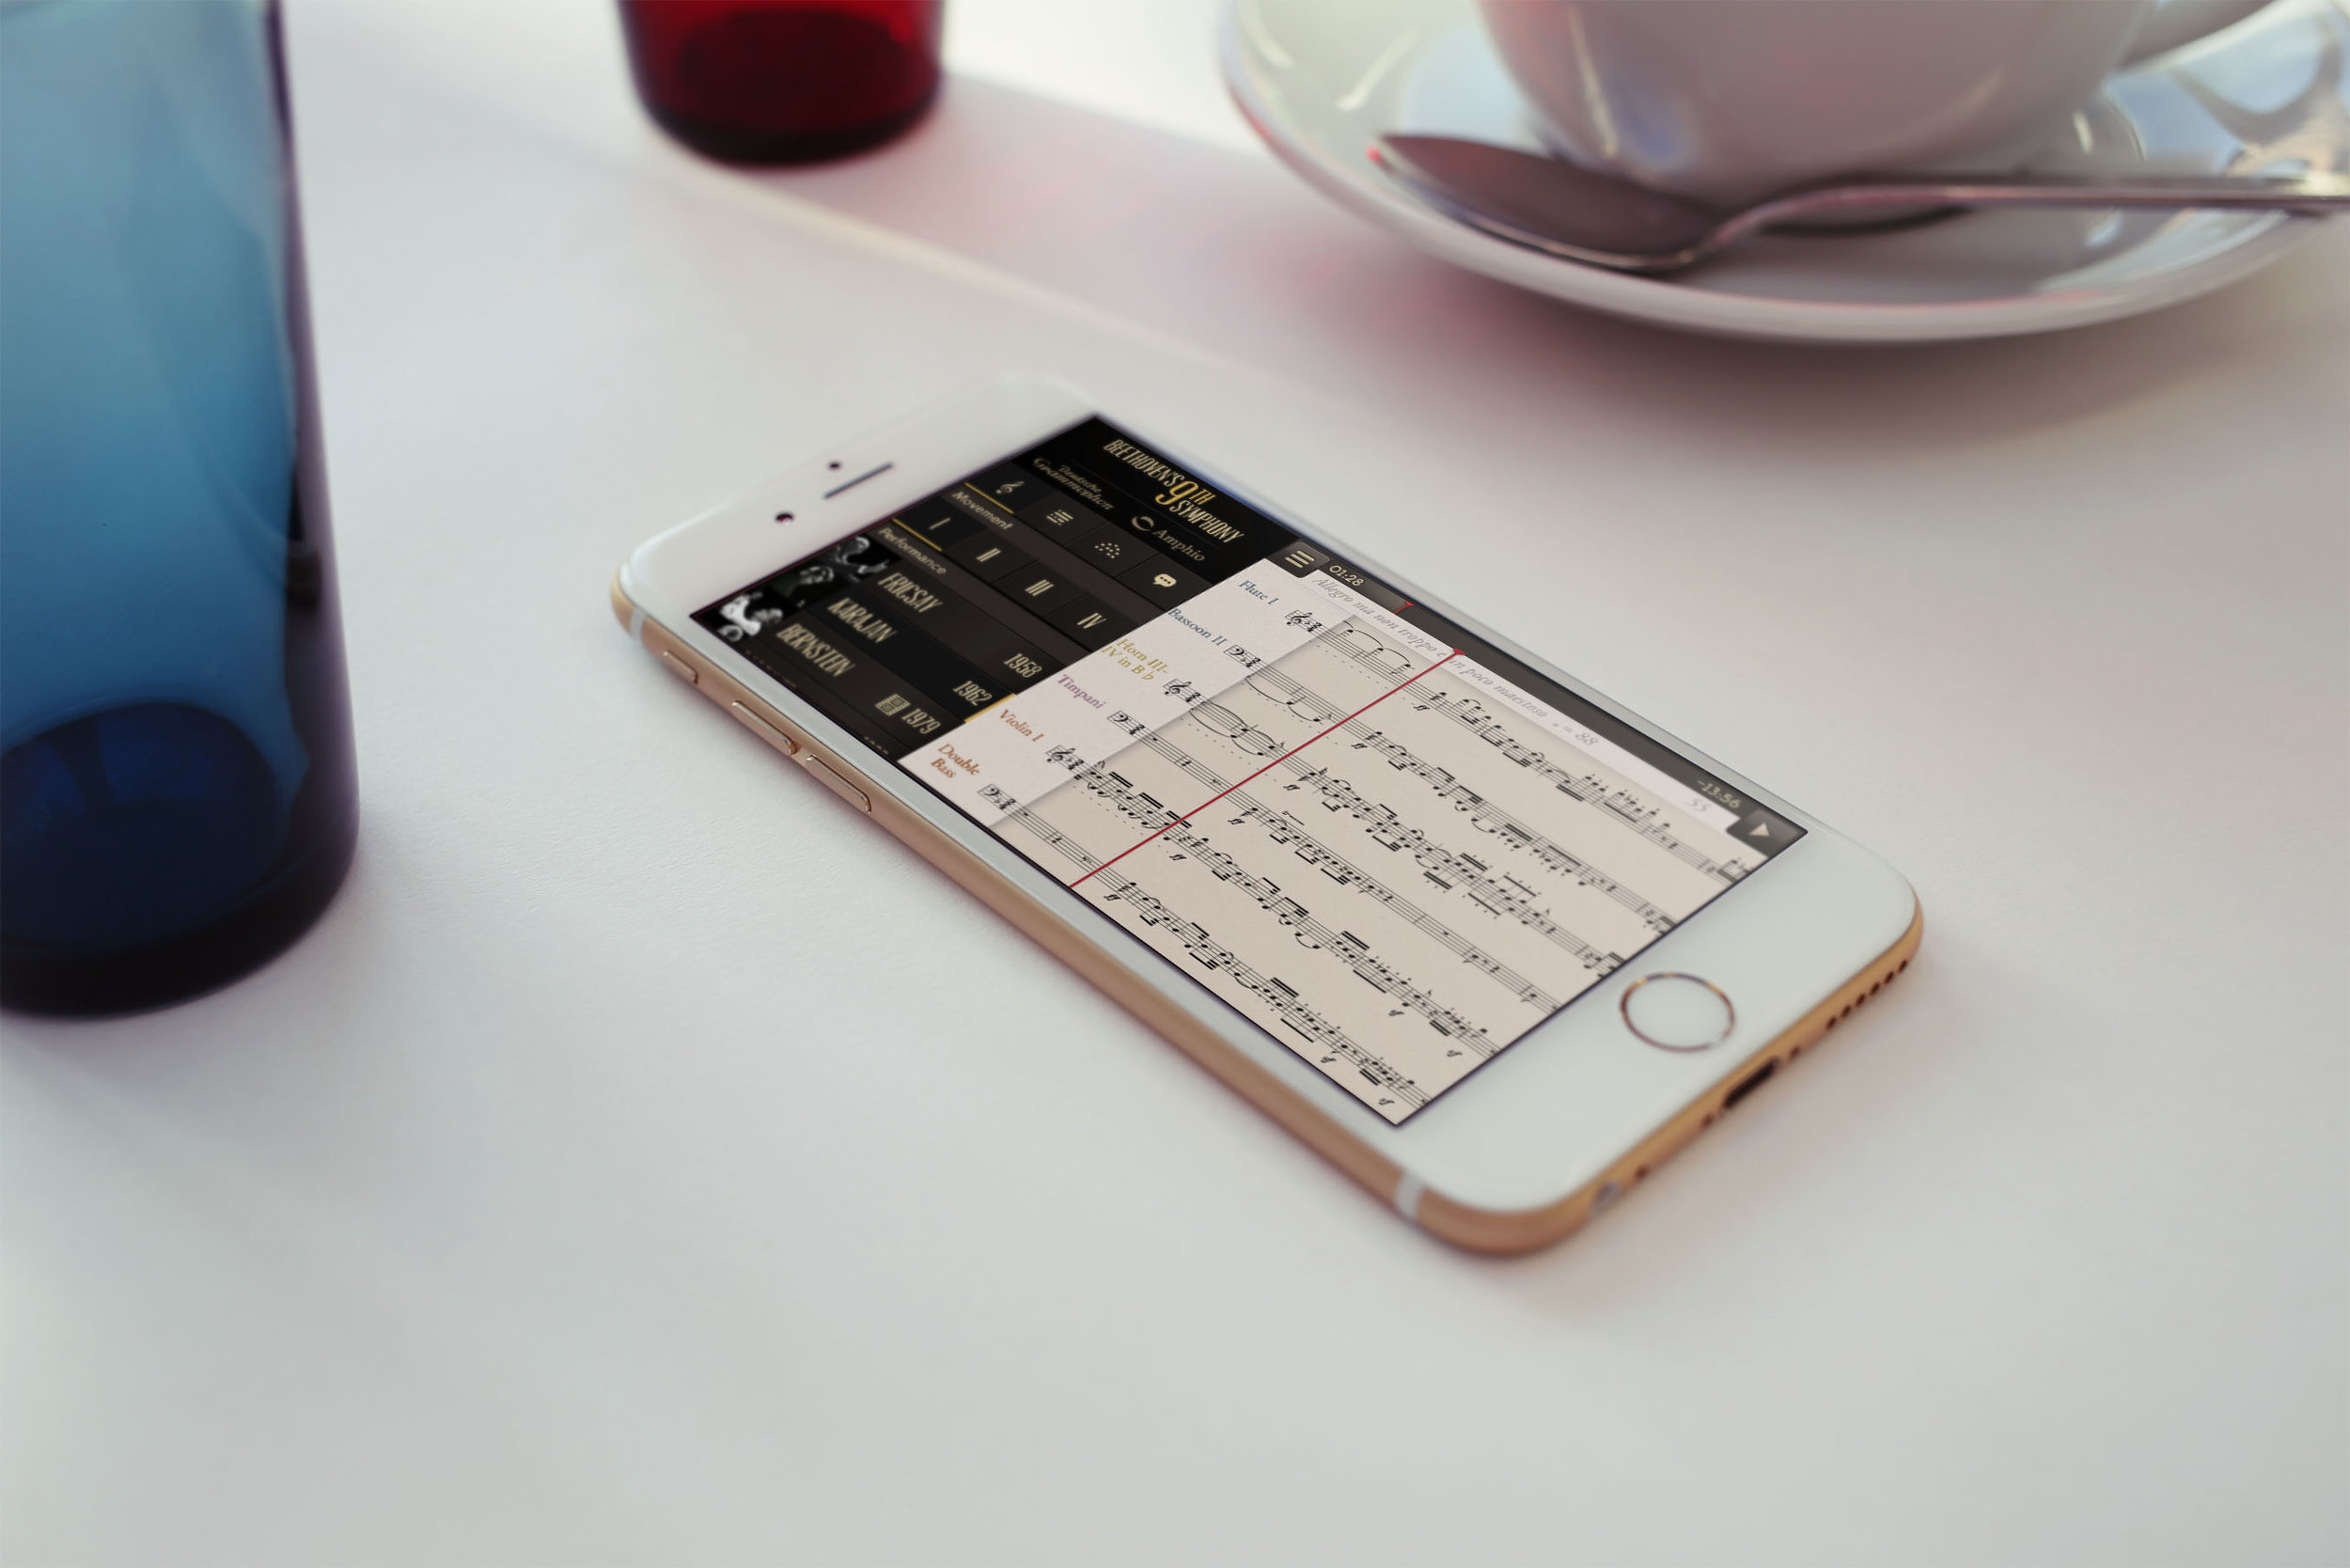 Beethoven's 9th Symphony  – an app for iPhone and iPad, including score syncing and on-the-fly performance switching